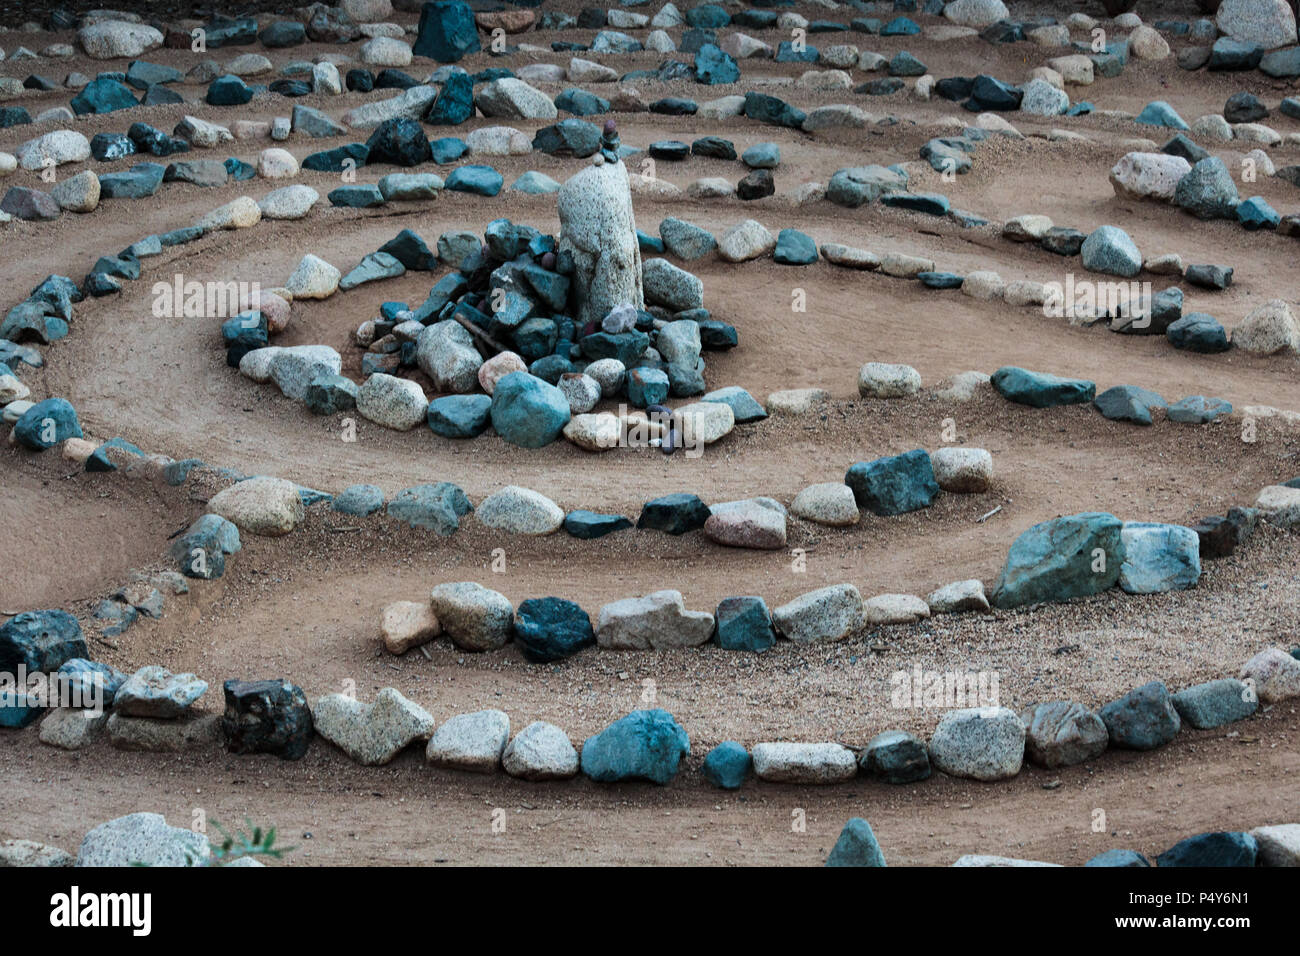 Traditional natural stone walking labyrinth mazze for contemplation and worship, created with rocks in shades of blue and turquoise. A calm, peaceful - Stock Image